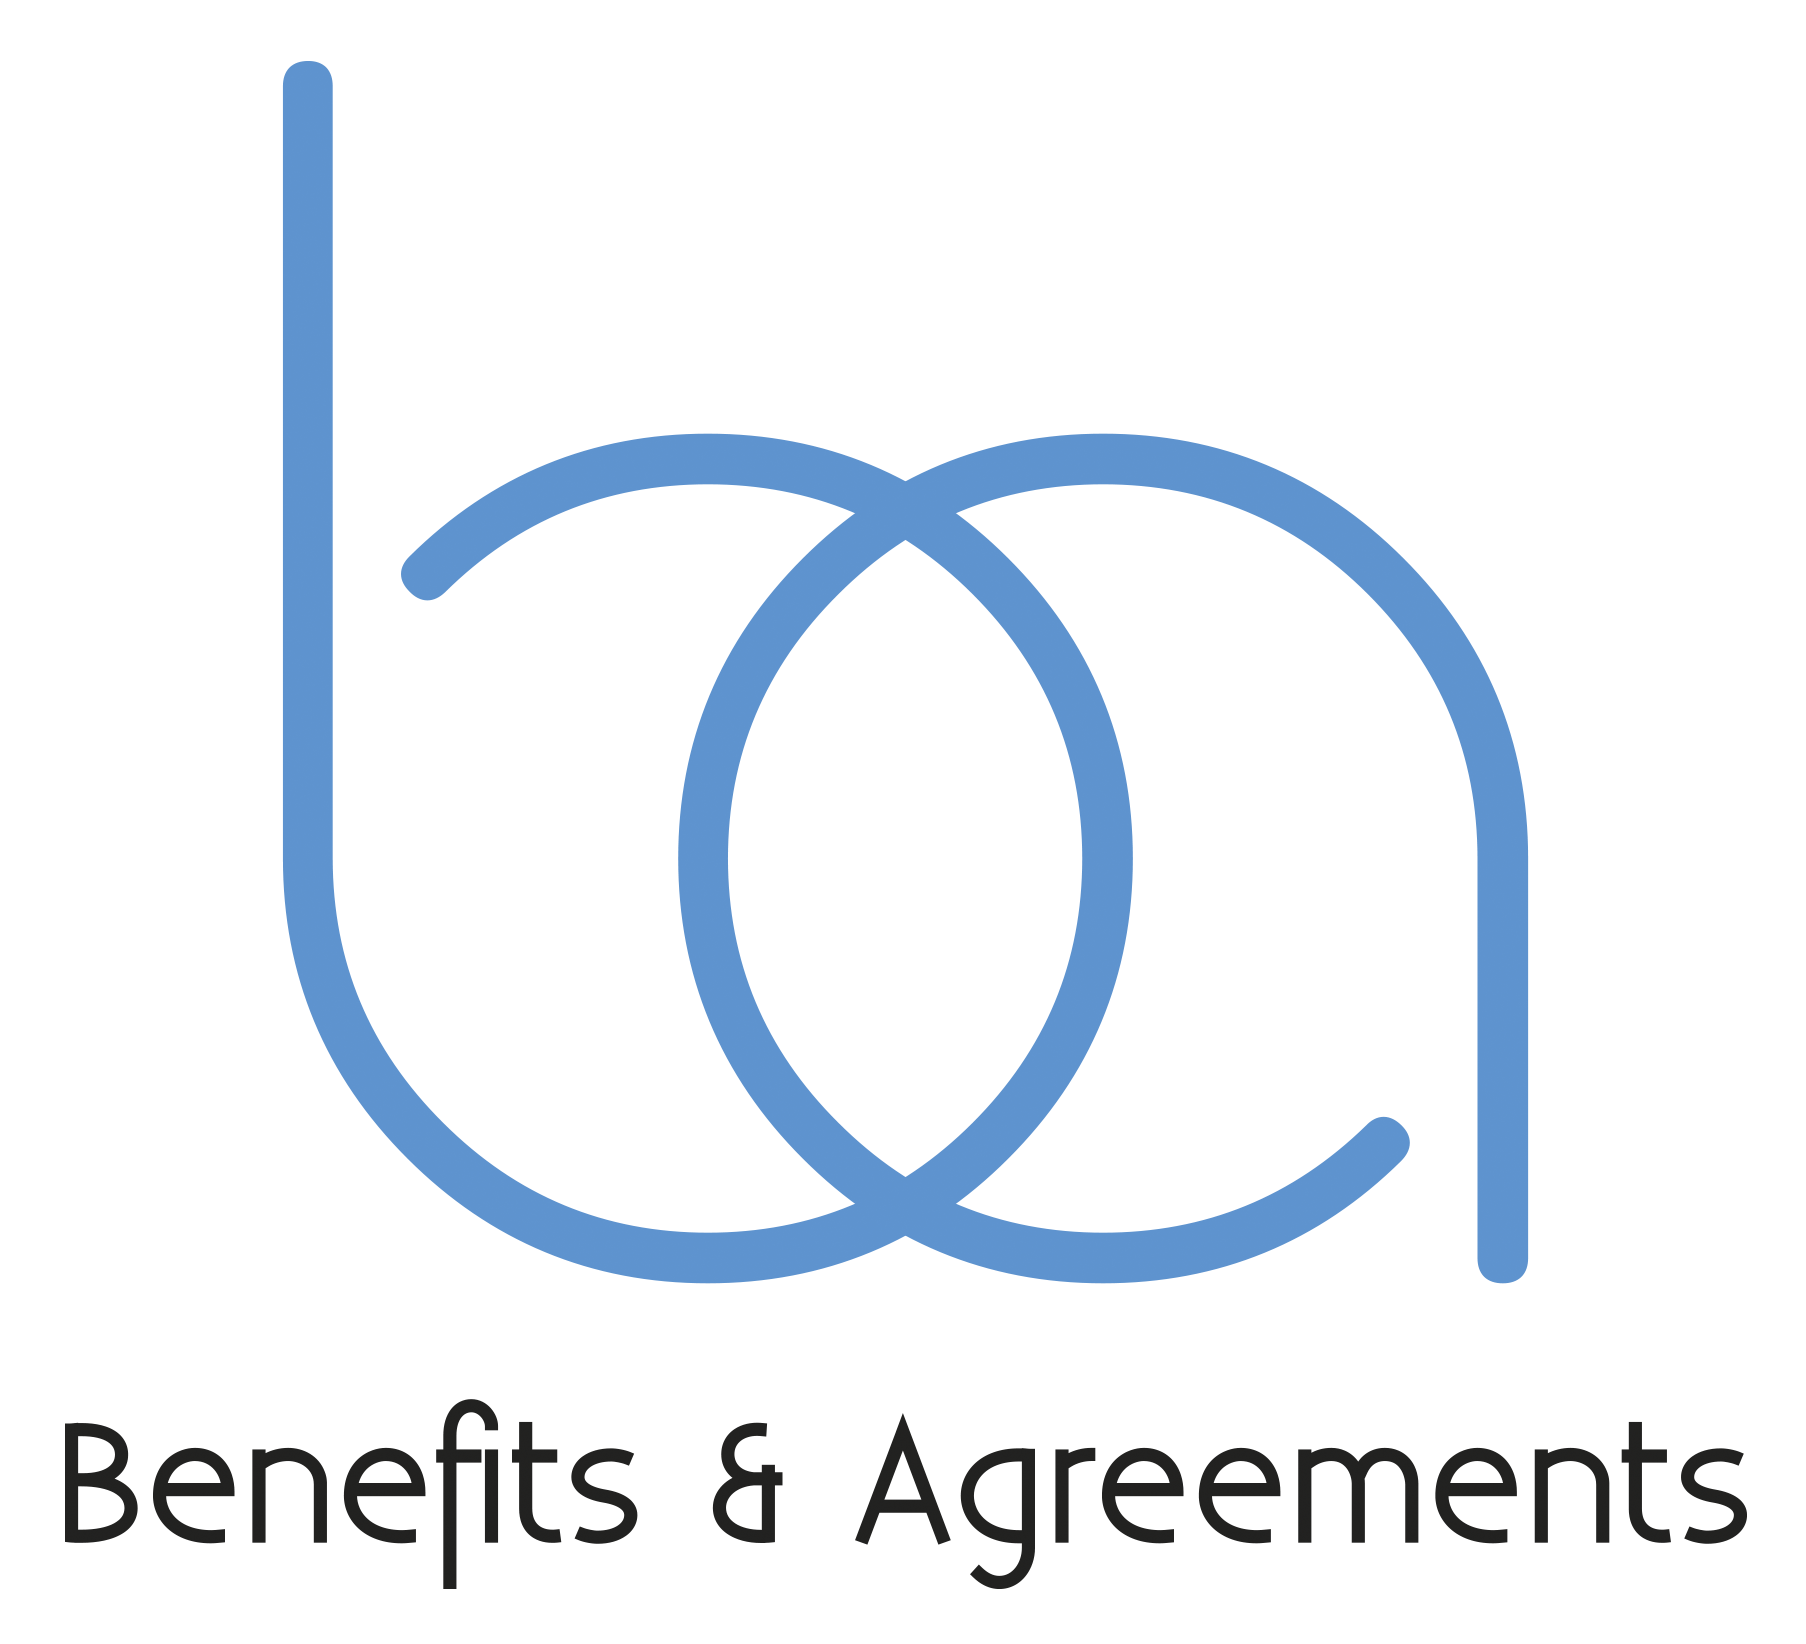 benefits_and_agreements